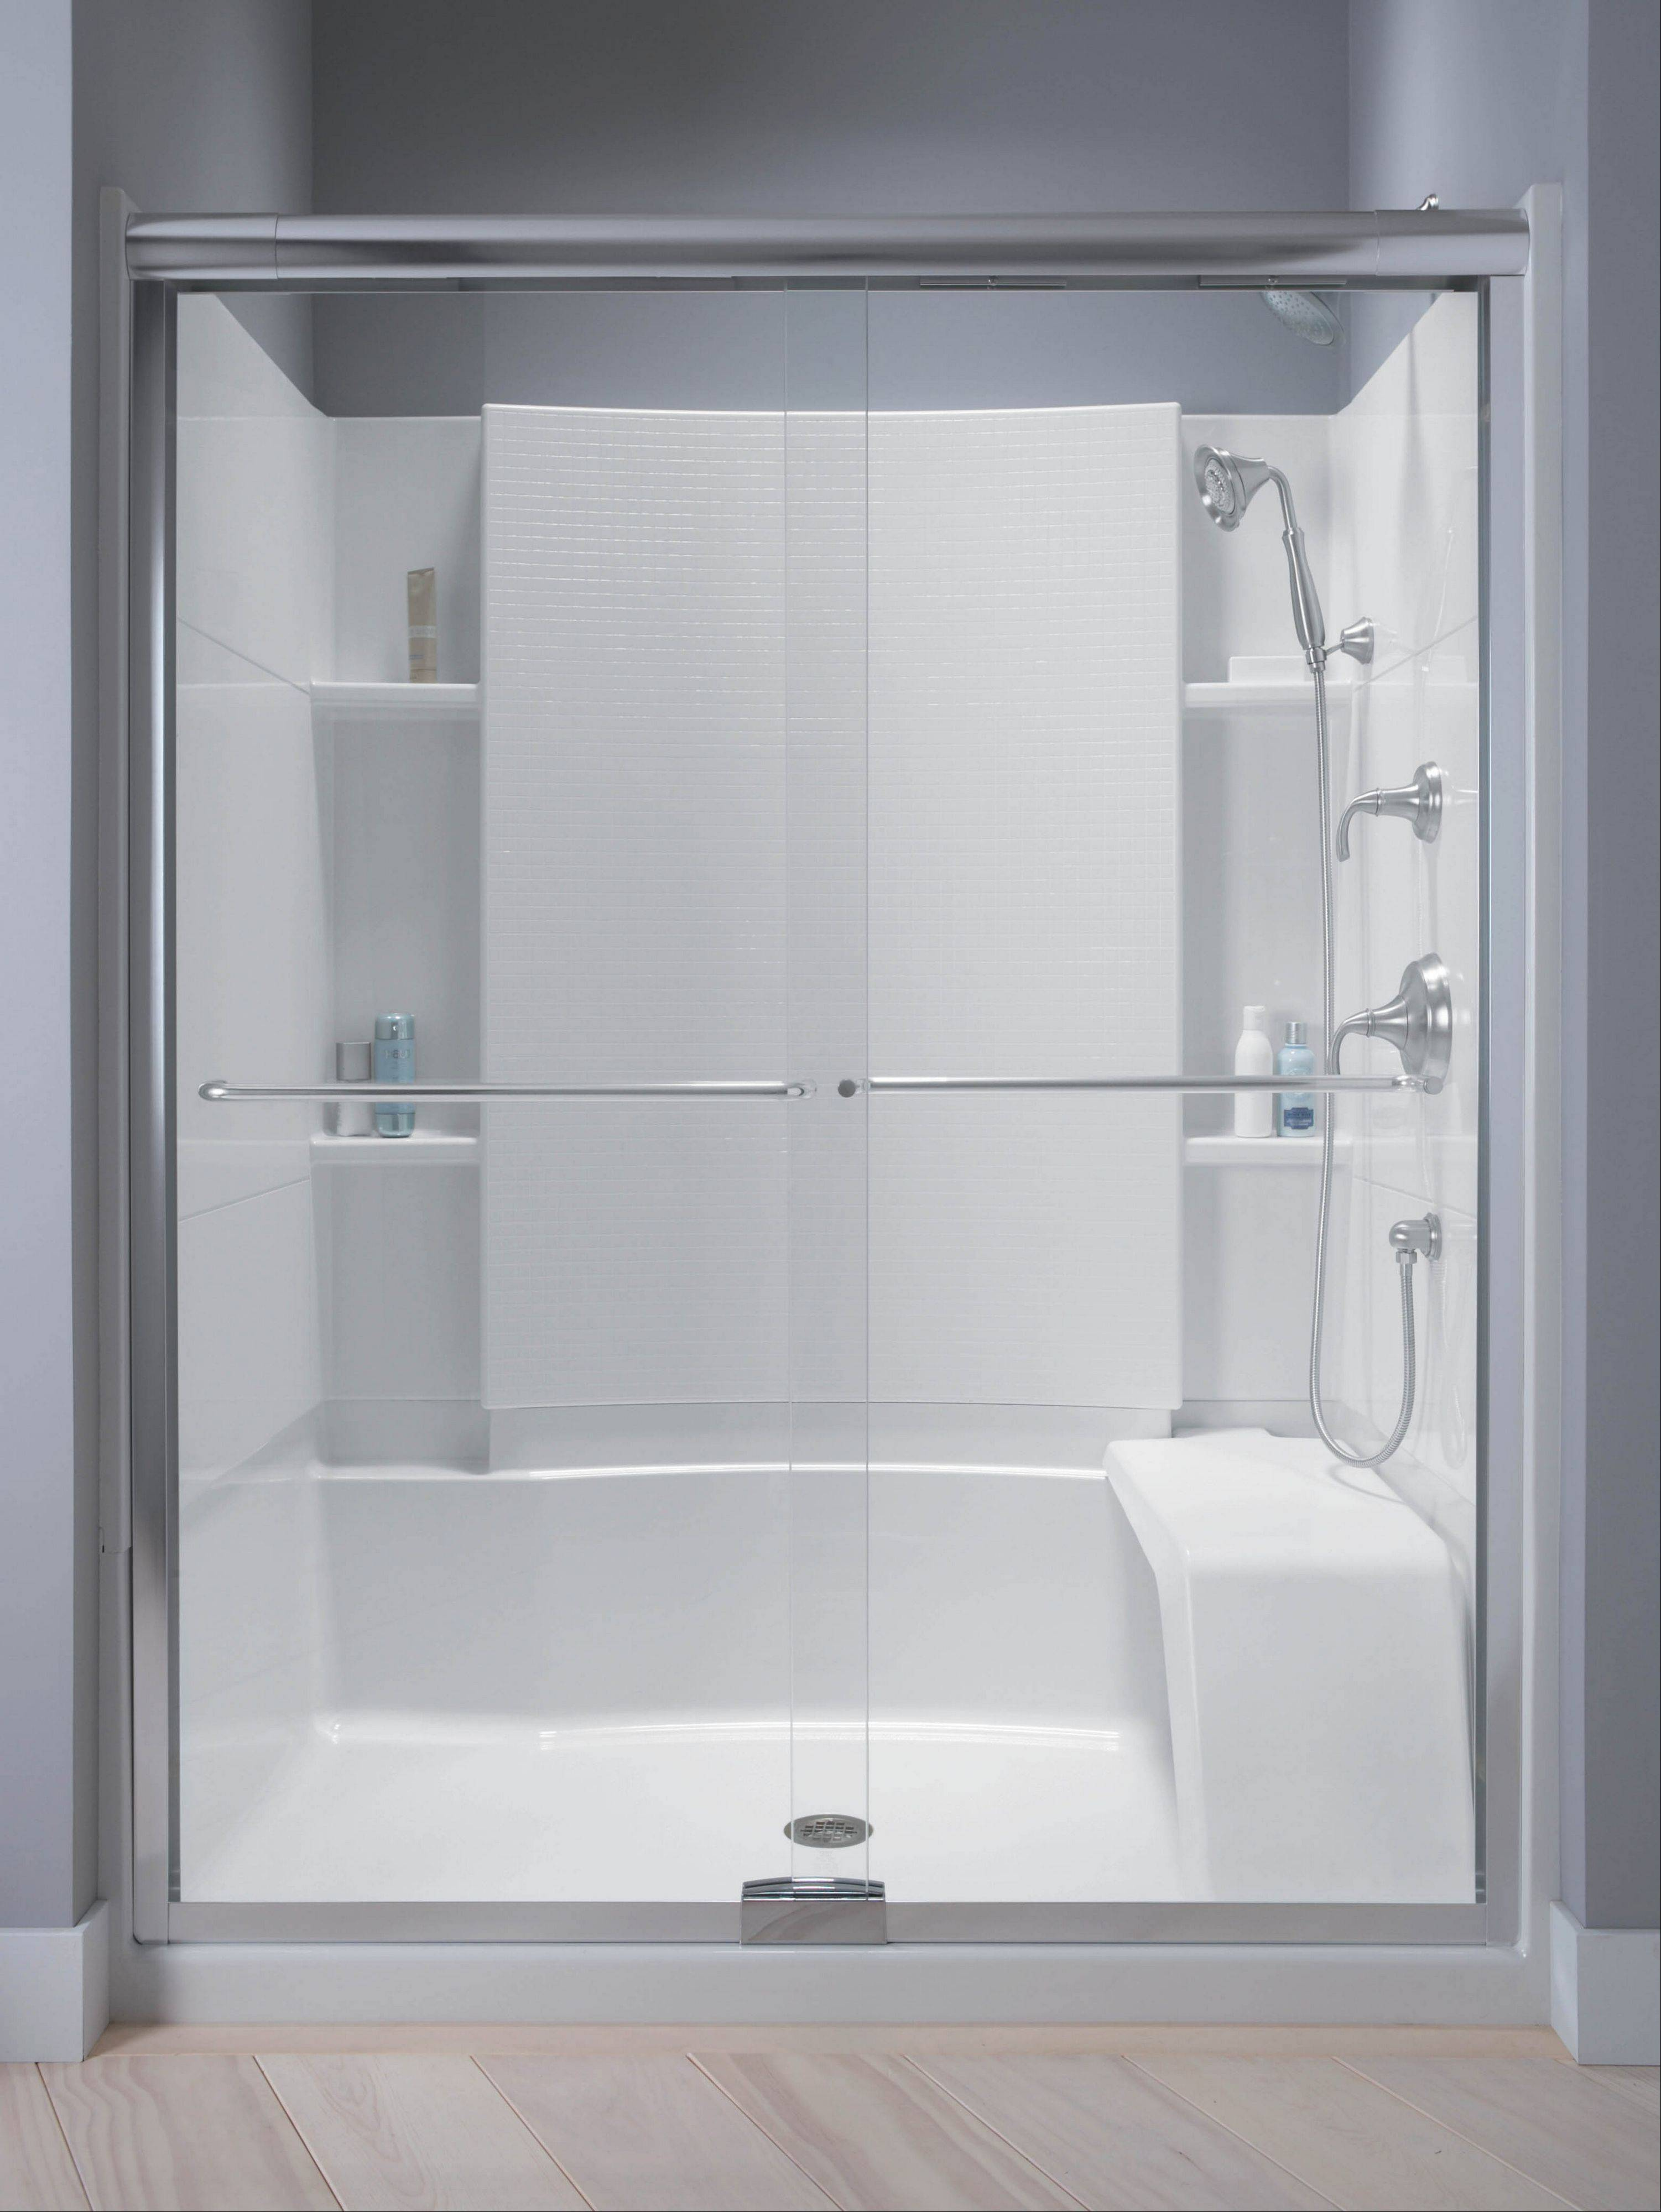 A great �aging-in-place� option involves replacing the existing tub with a large walk-in shower base.